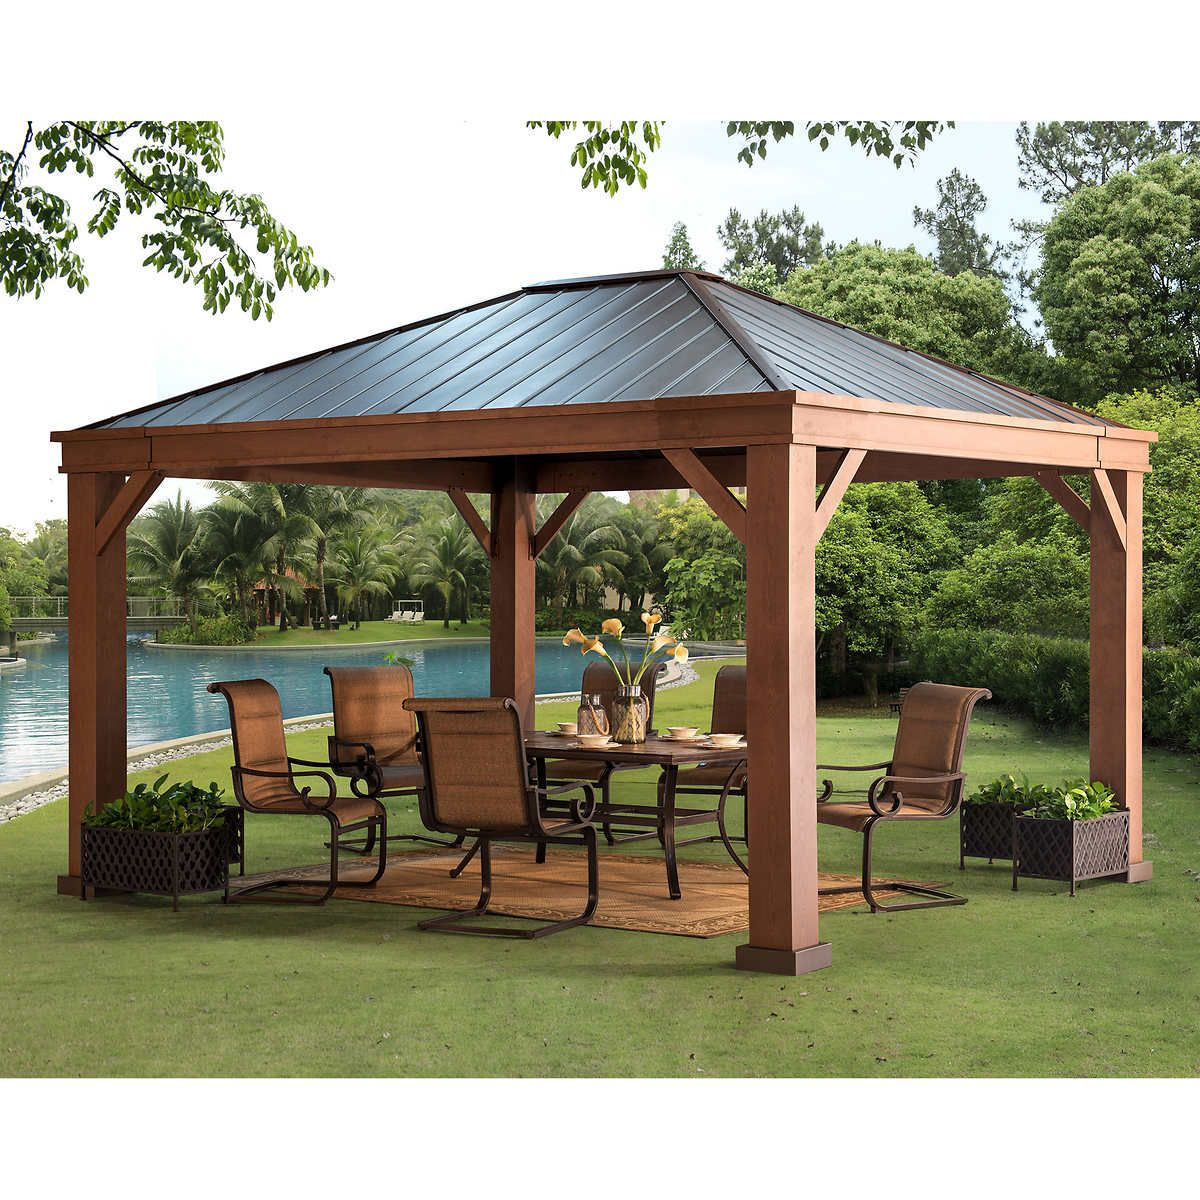 Pin By Zanetta Brown On Patio Backyard Pavilion Outdoor Pergola